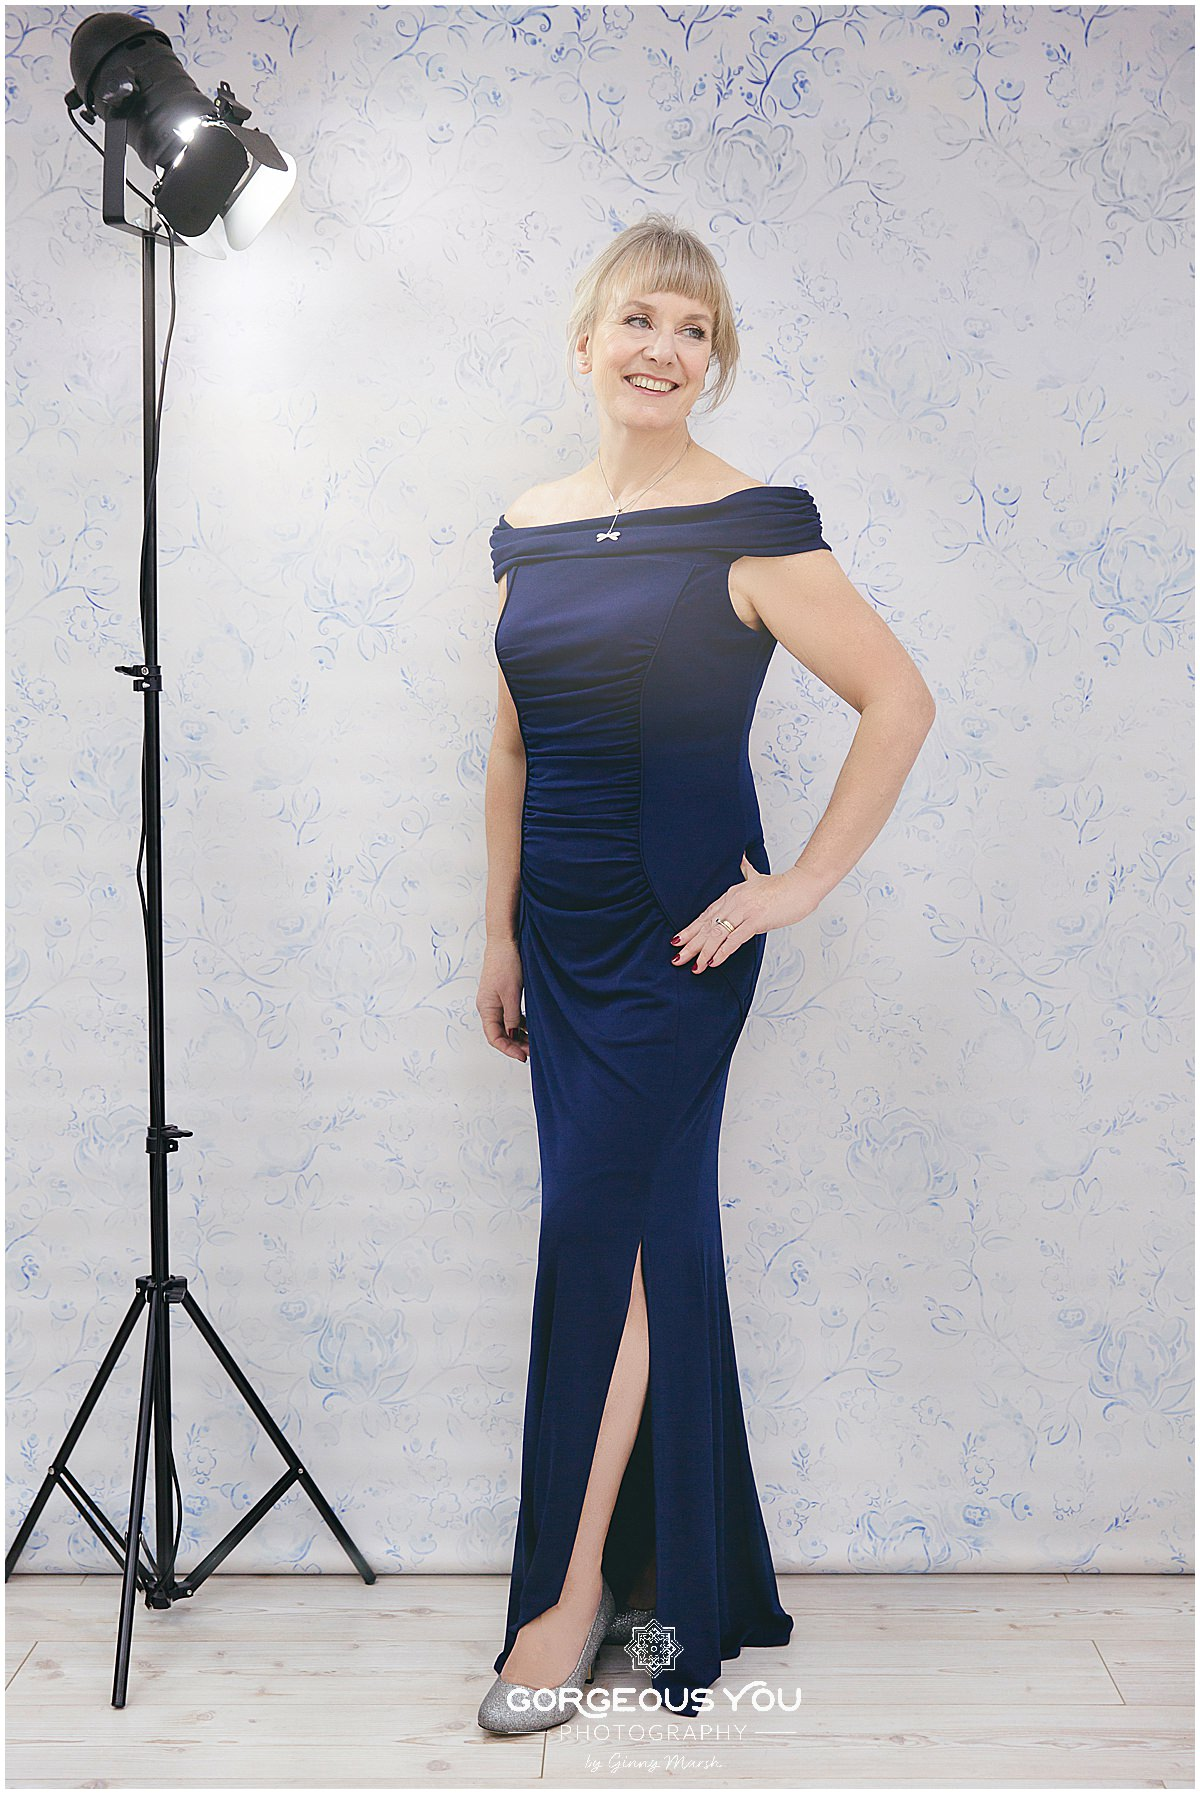 Linda's 60th birthday photoshoot - evening dress | Gorgeous You Photography